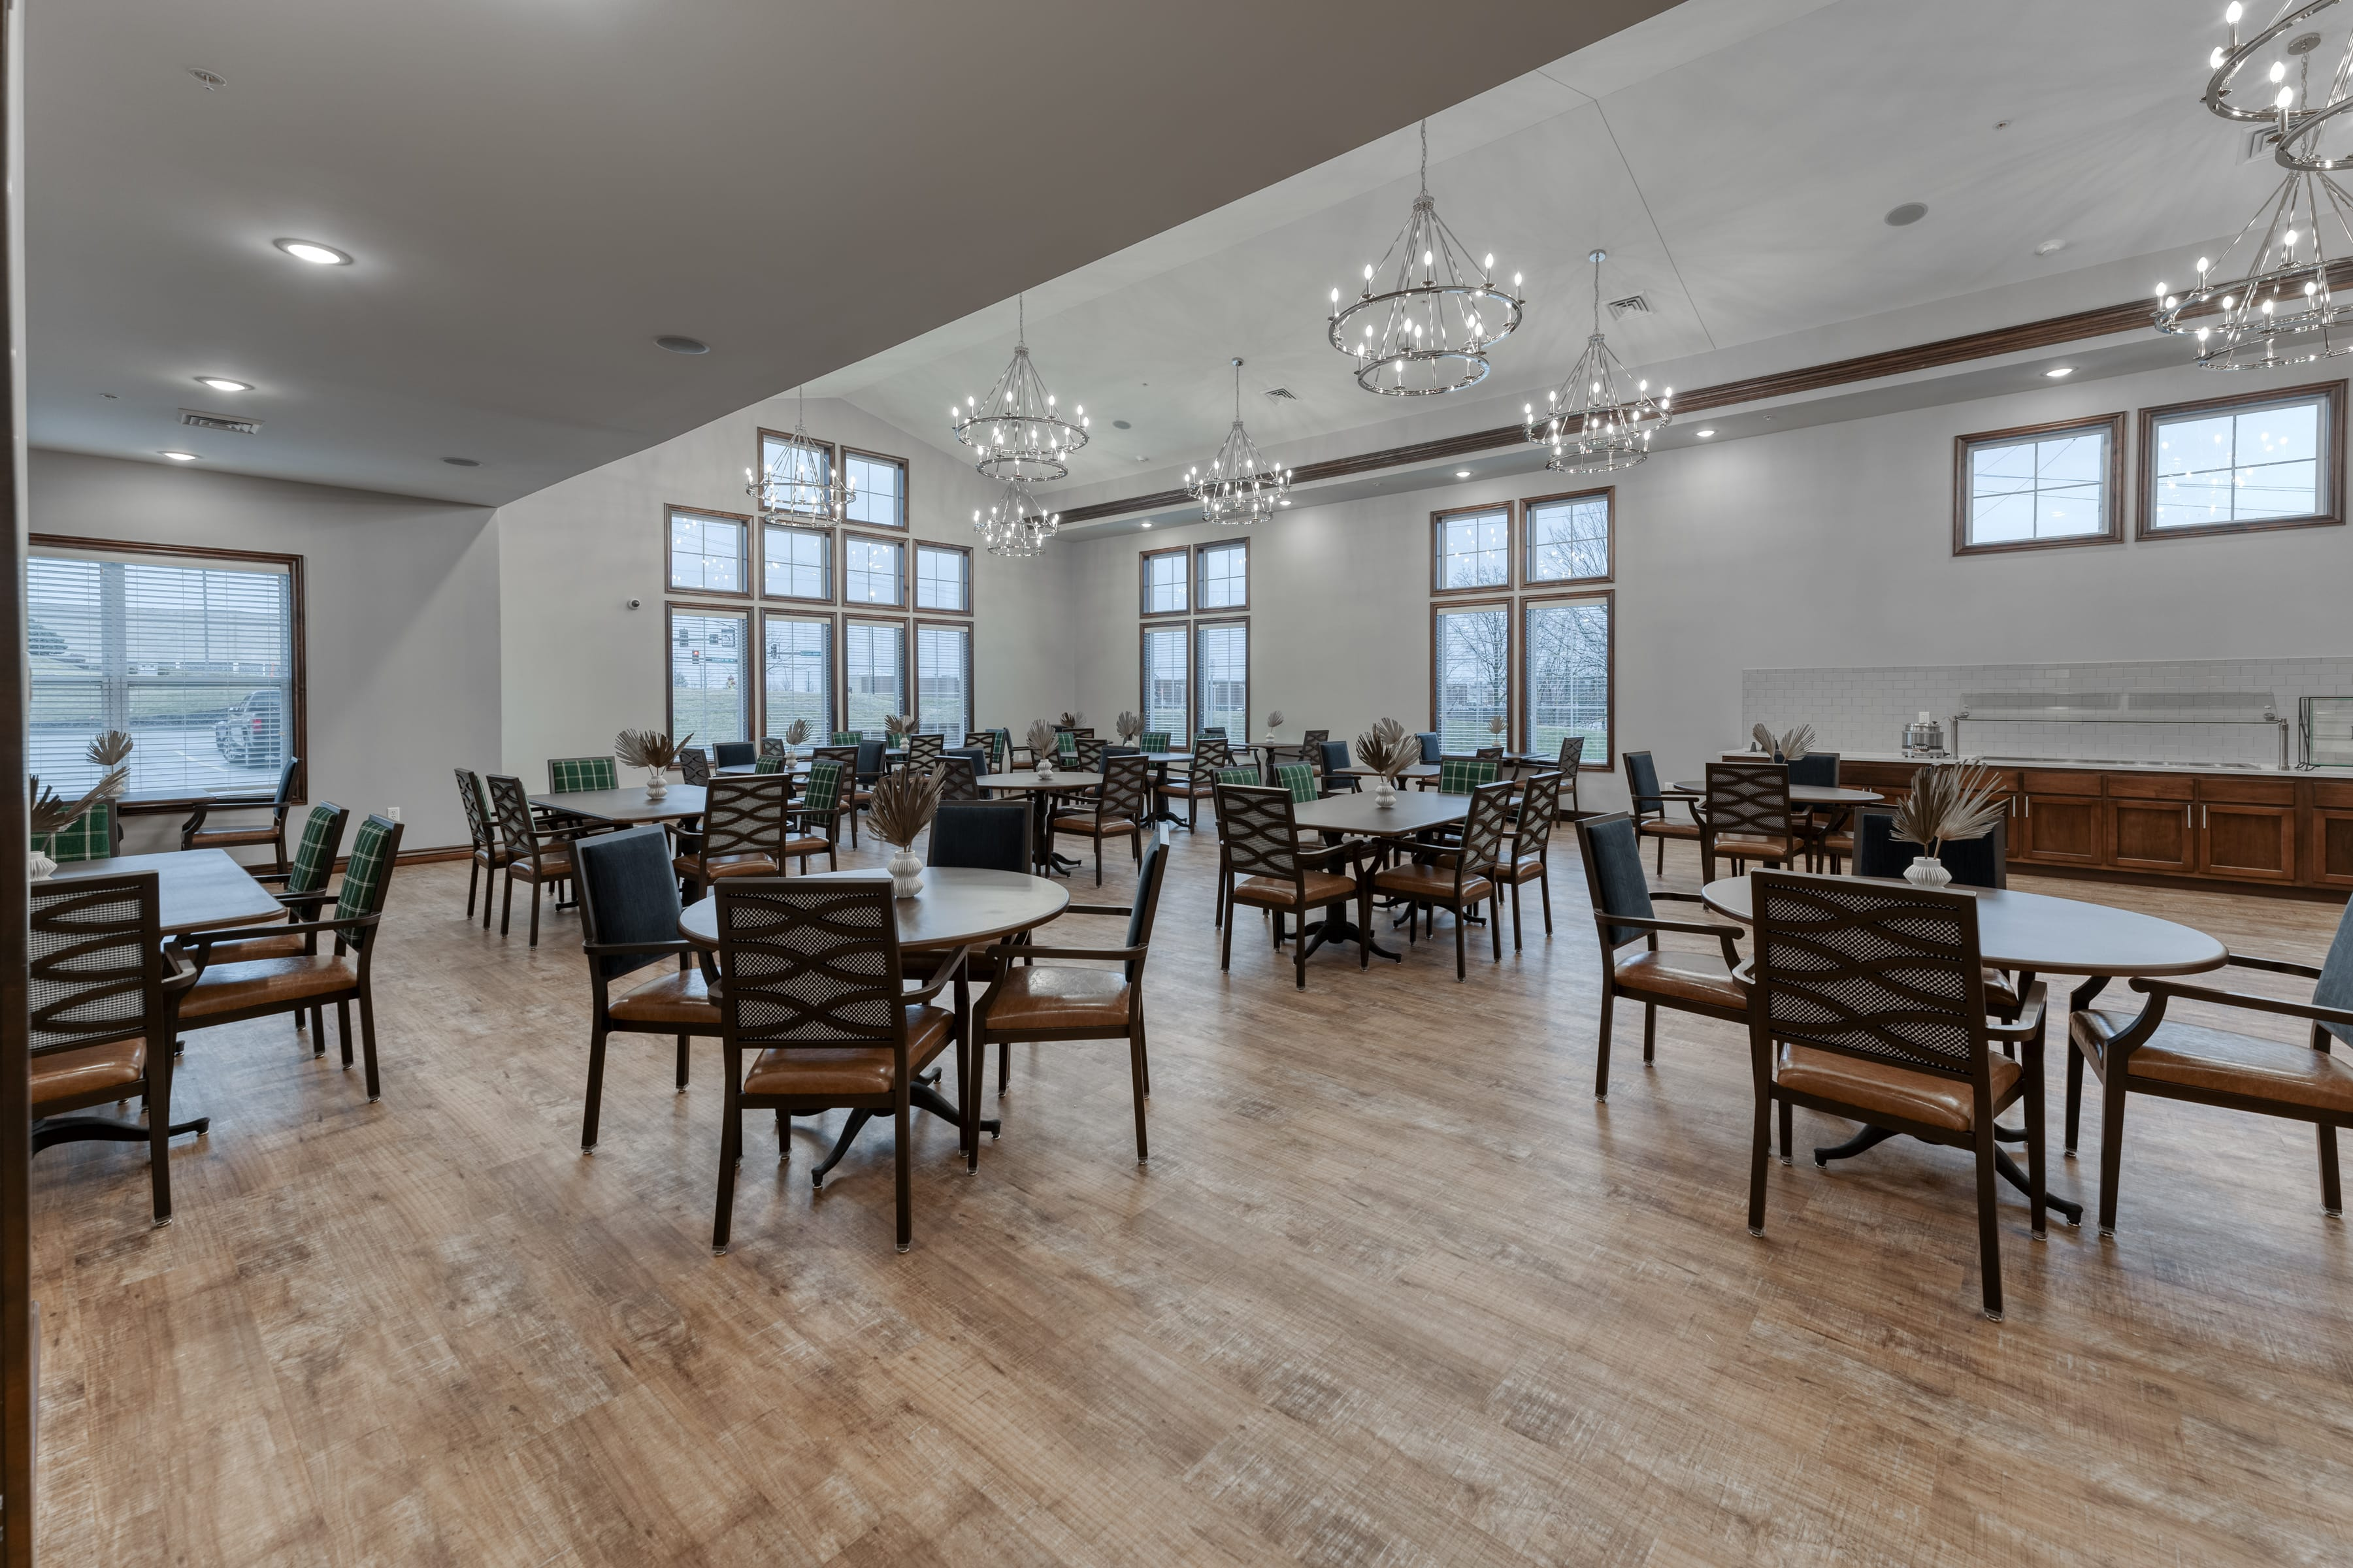 A large, open dining space welcomes residents at meal times and allows for flexible seating arrangements